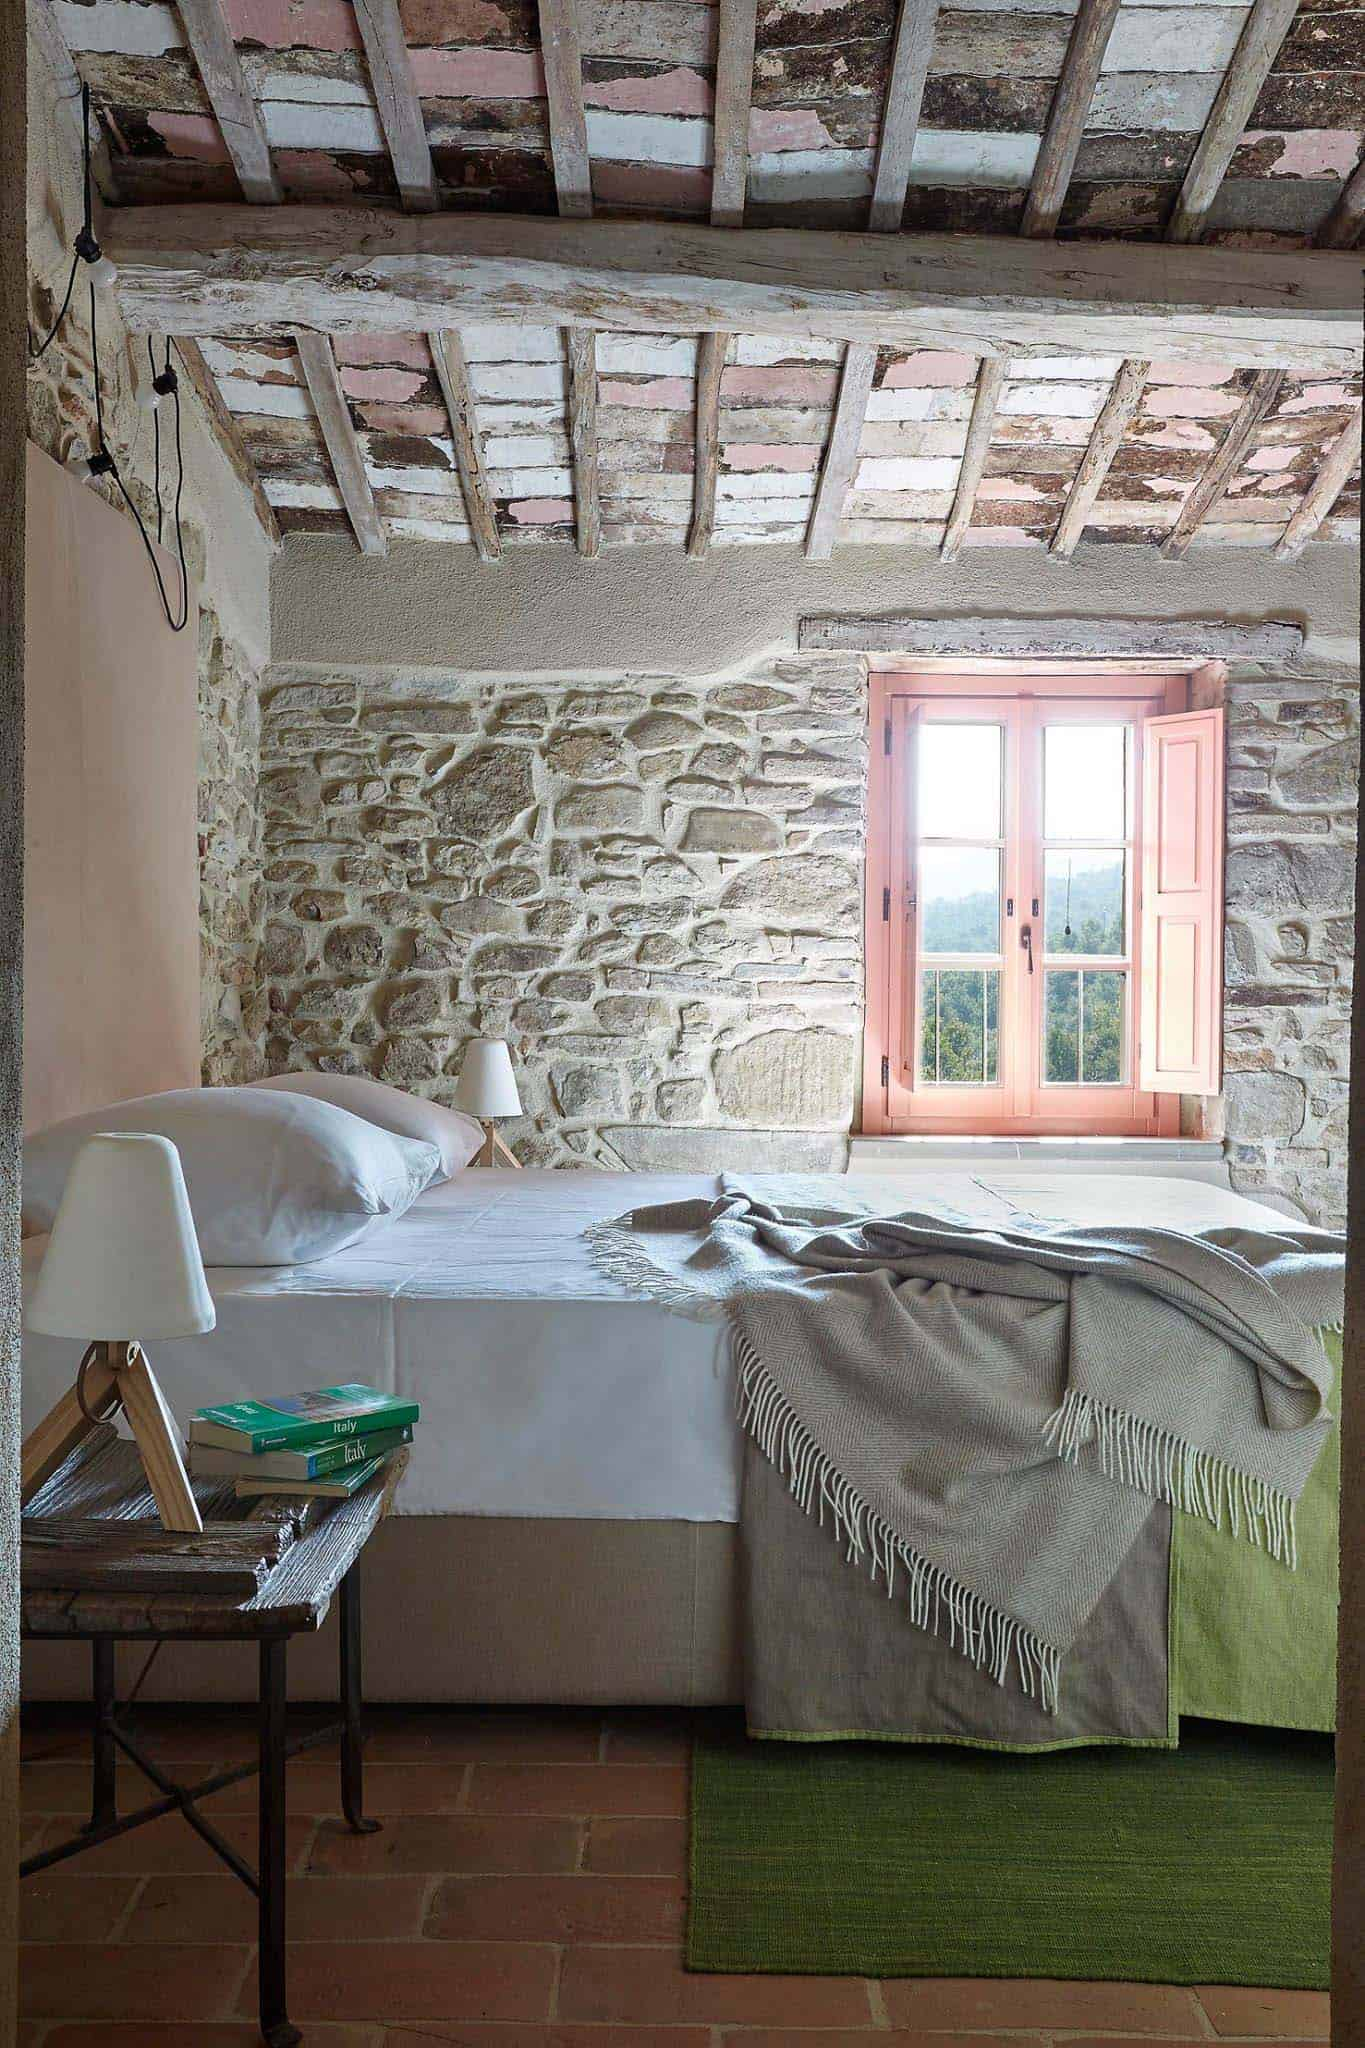 16th Century Farmhouse Restored Into Charming Holiday